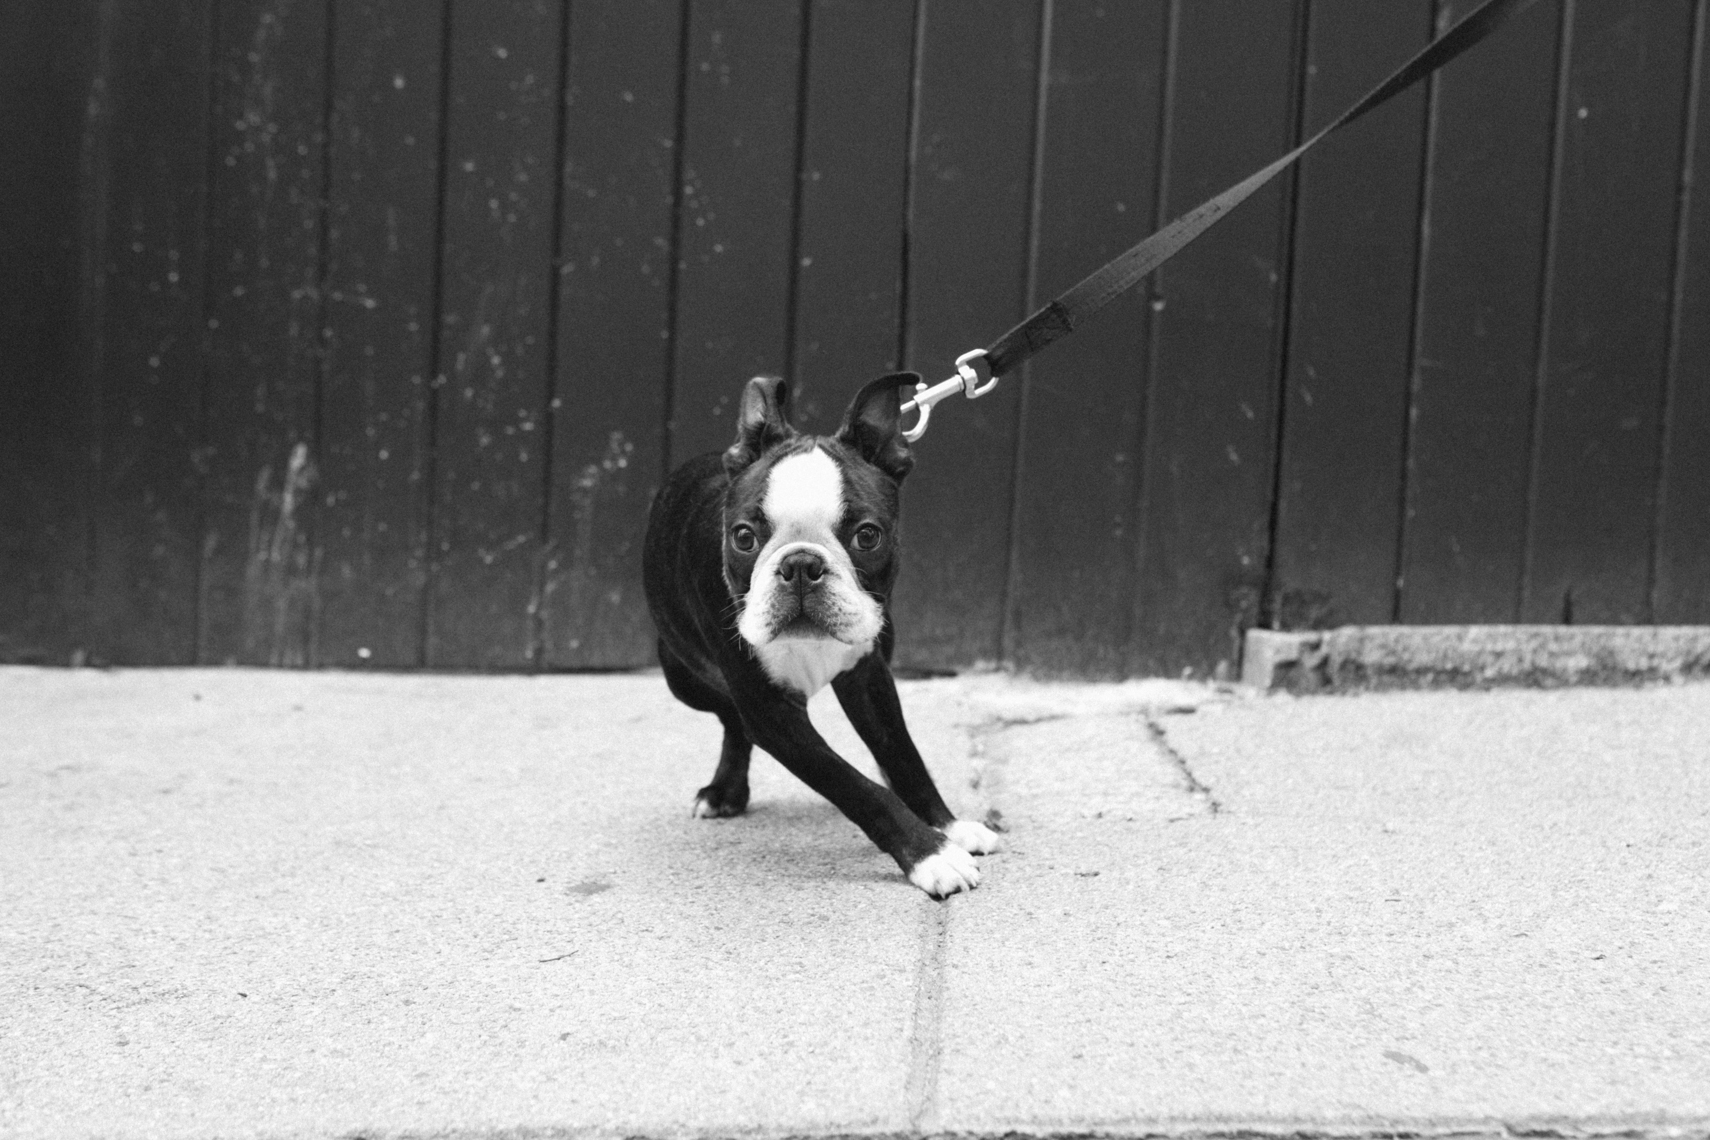 A Boston Terrier on the streets of Boston